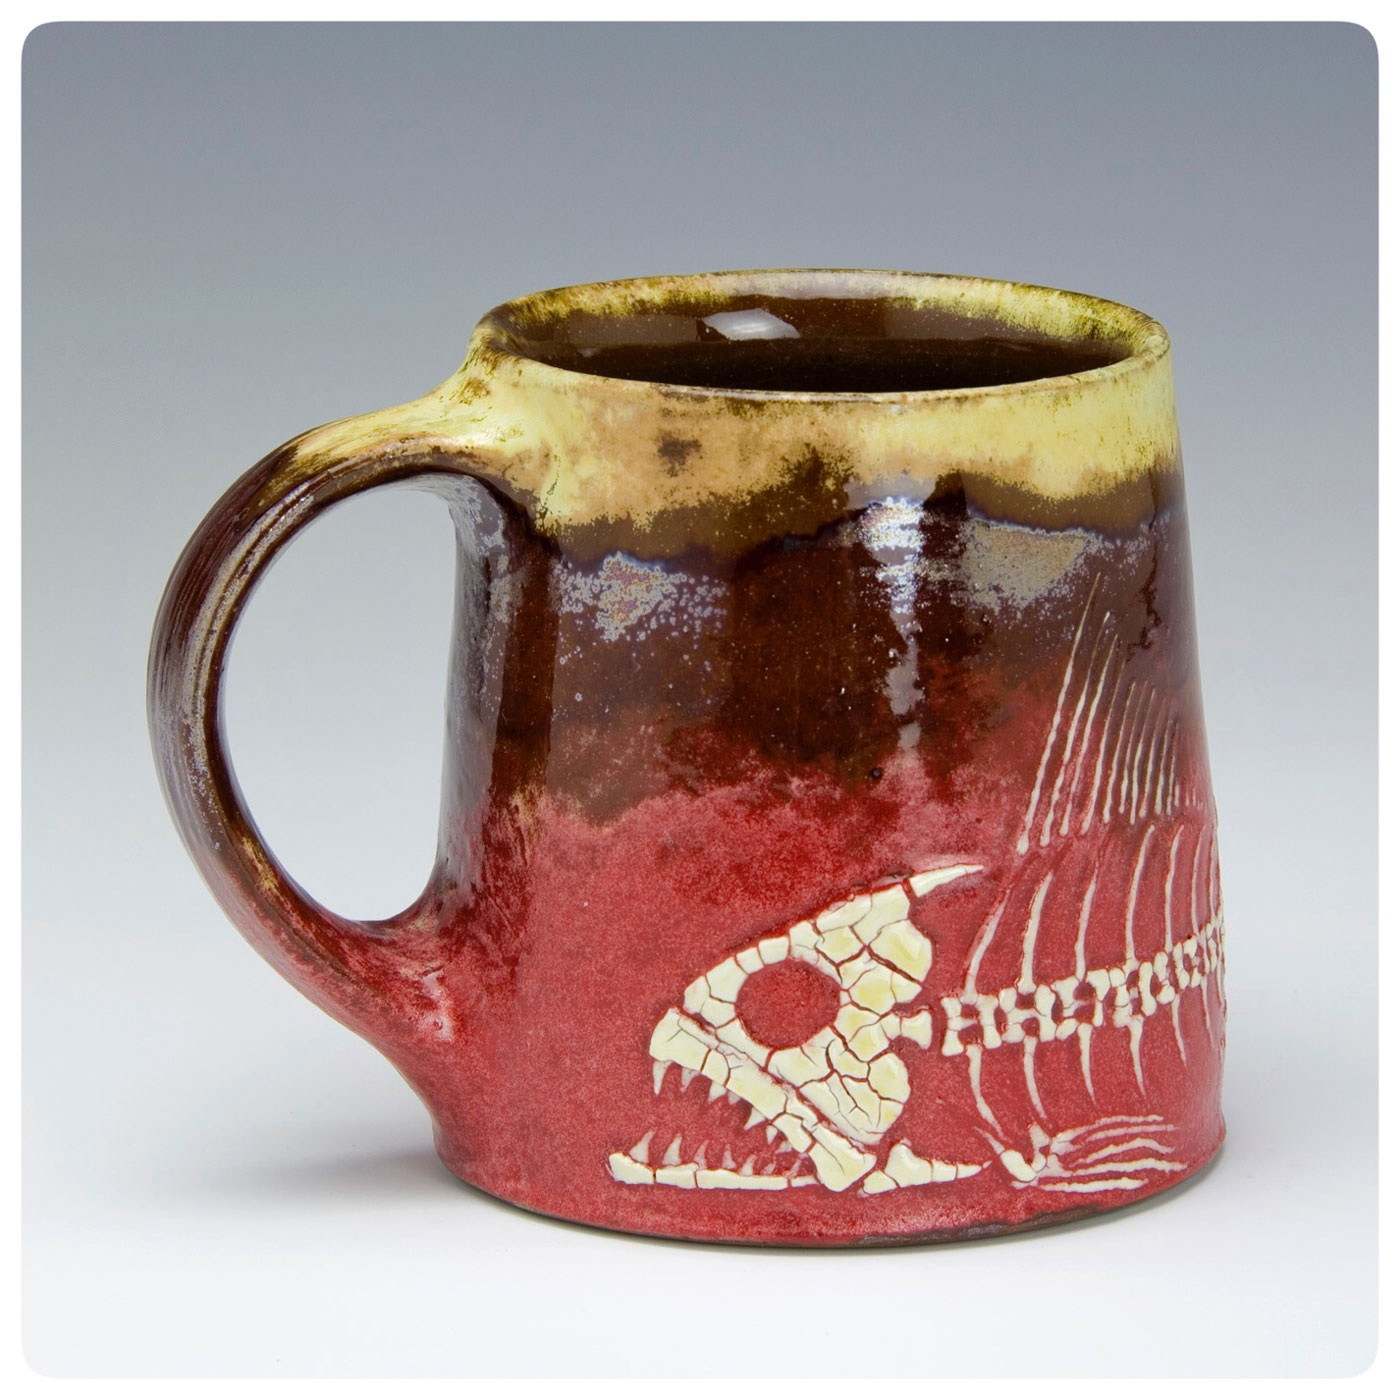 Fossil Fish Art Cup made by Bruce Gholson, Bulldog Pottery, Seagrove, North Carolina